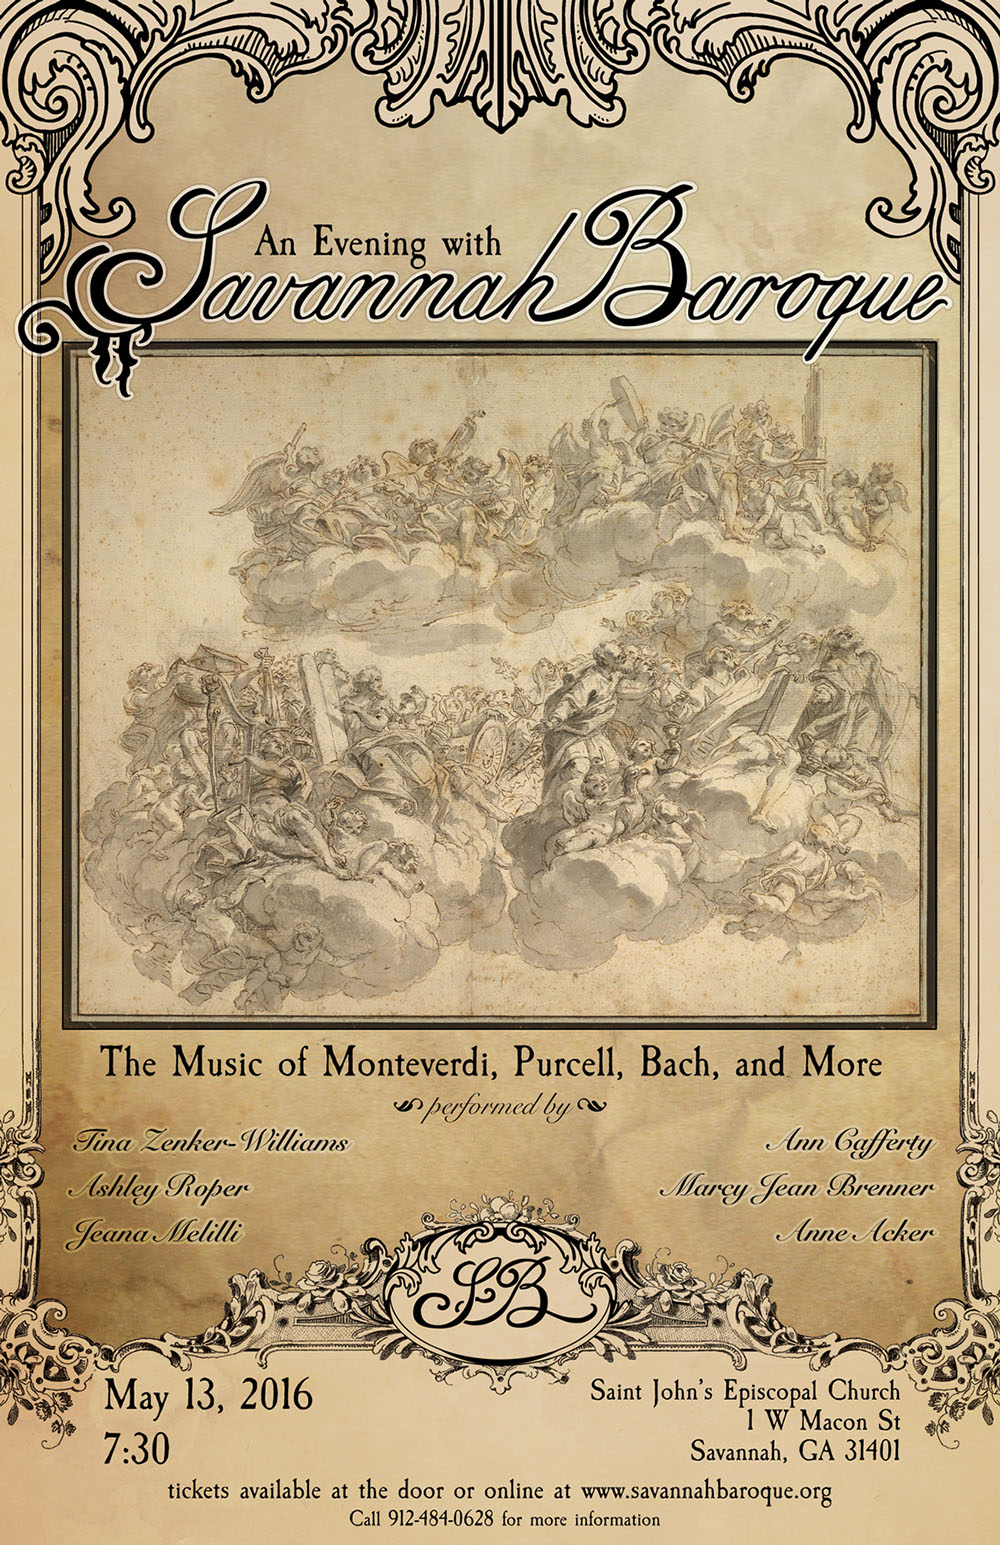 Savannah Baroque May 13, 2016 concert poster